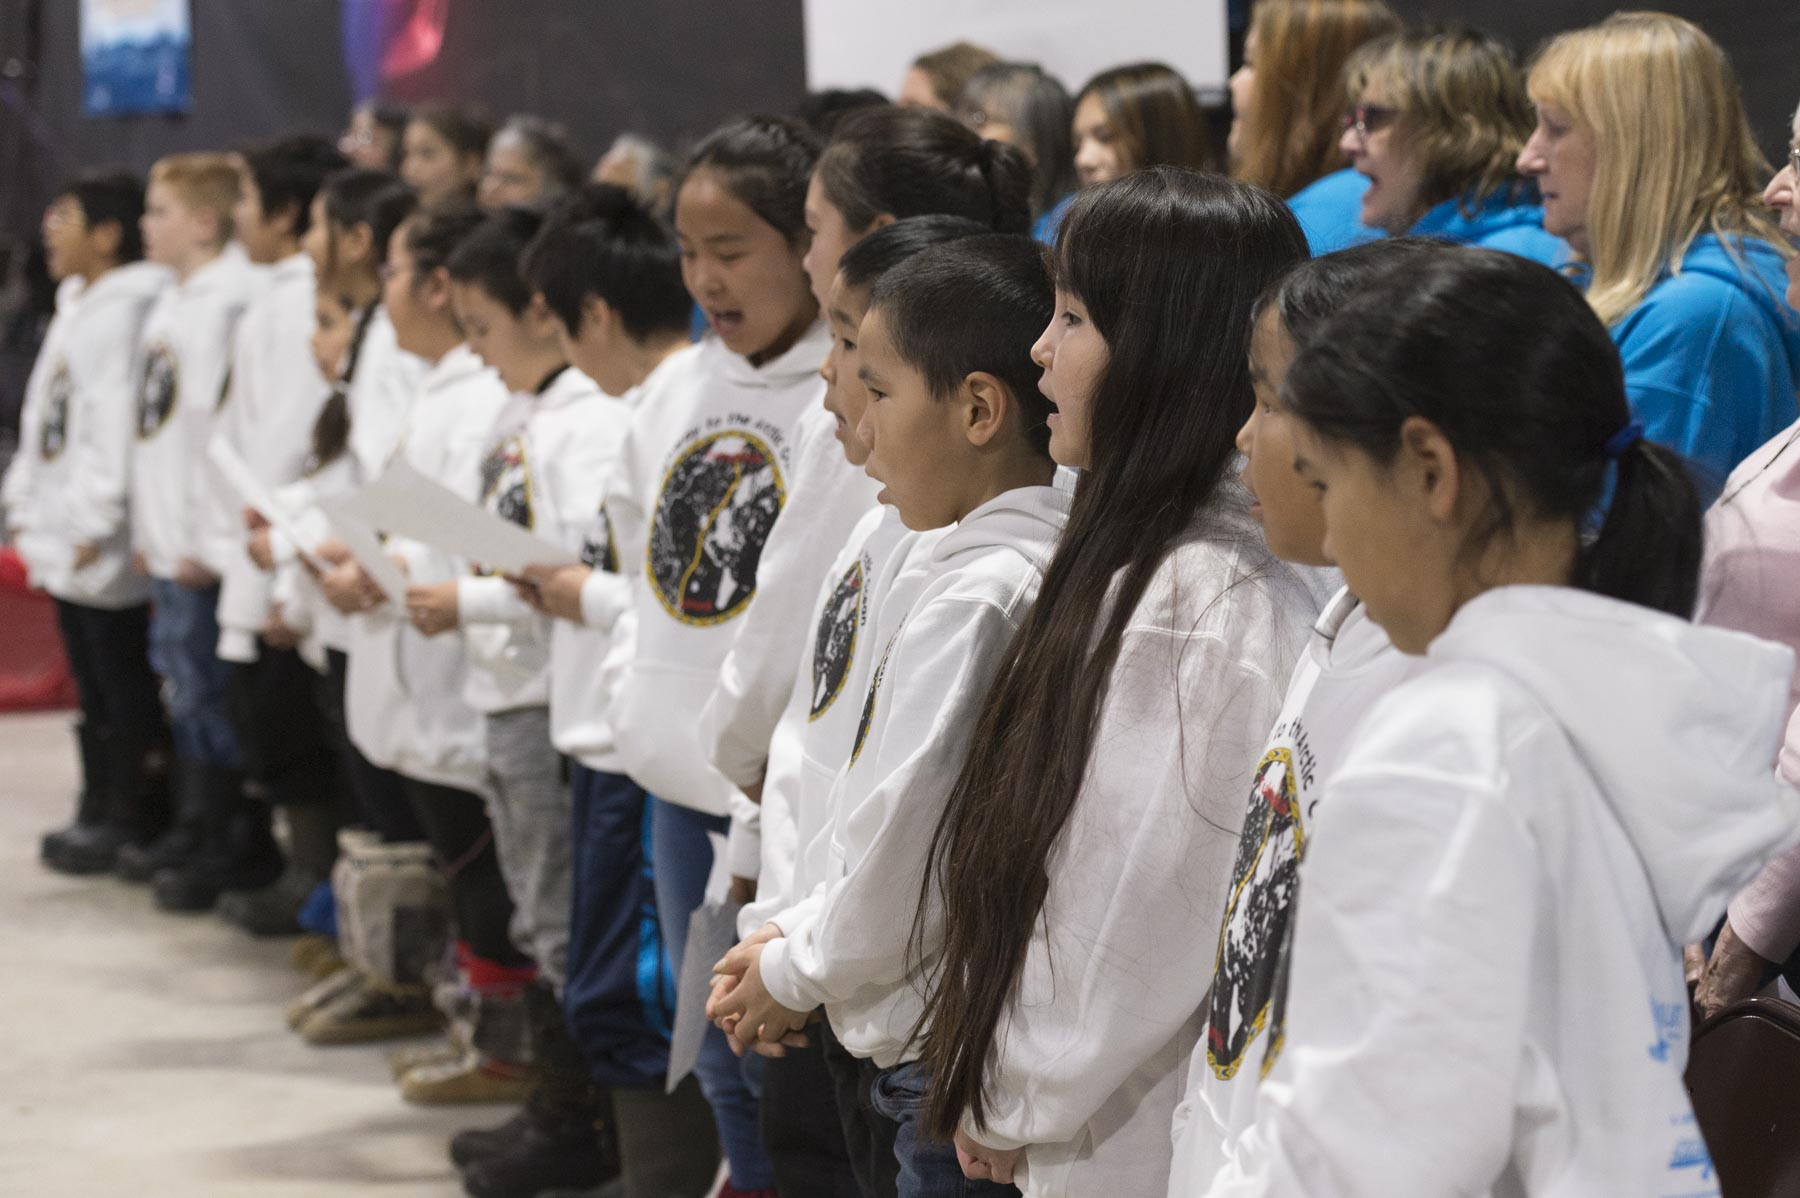 During the ceremony, local youth sang the Canadian Anthem.